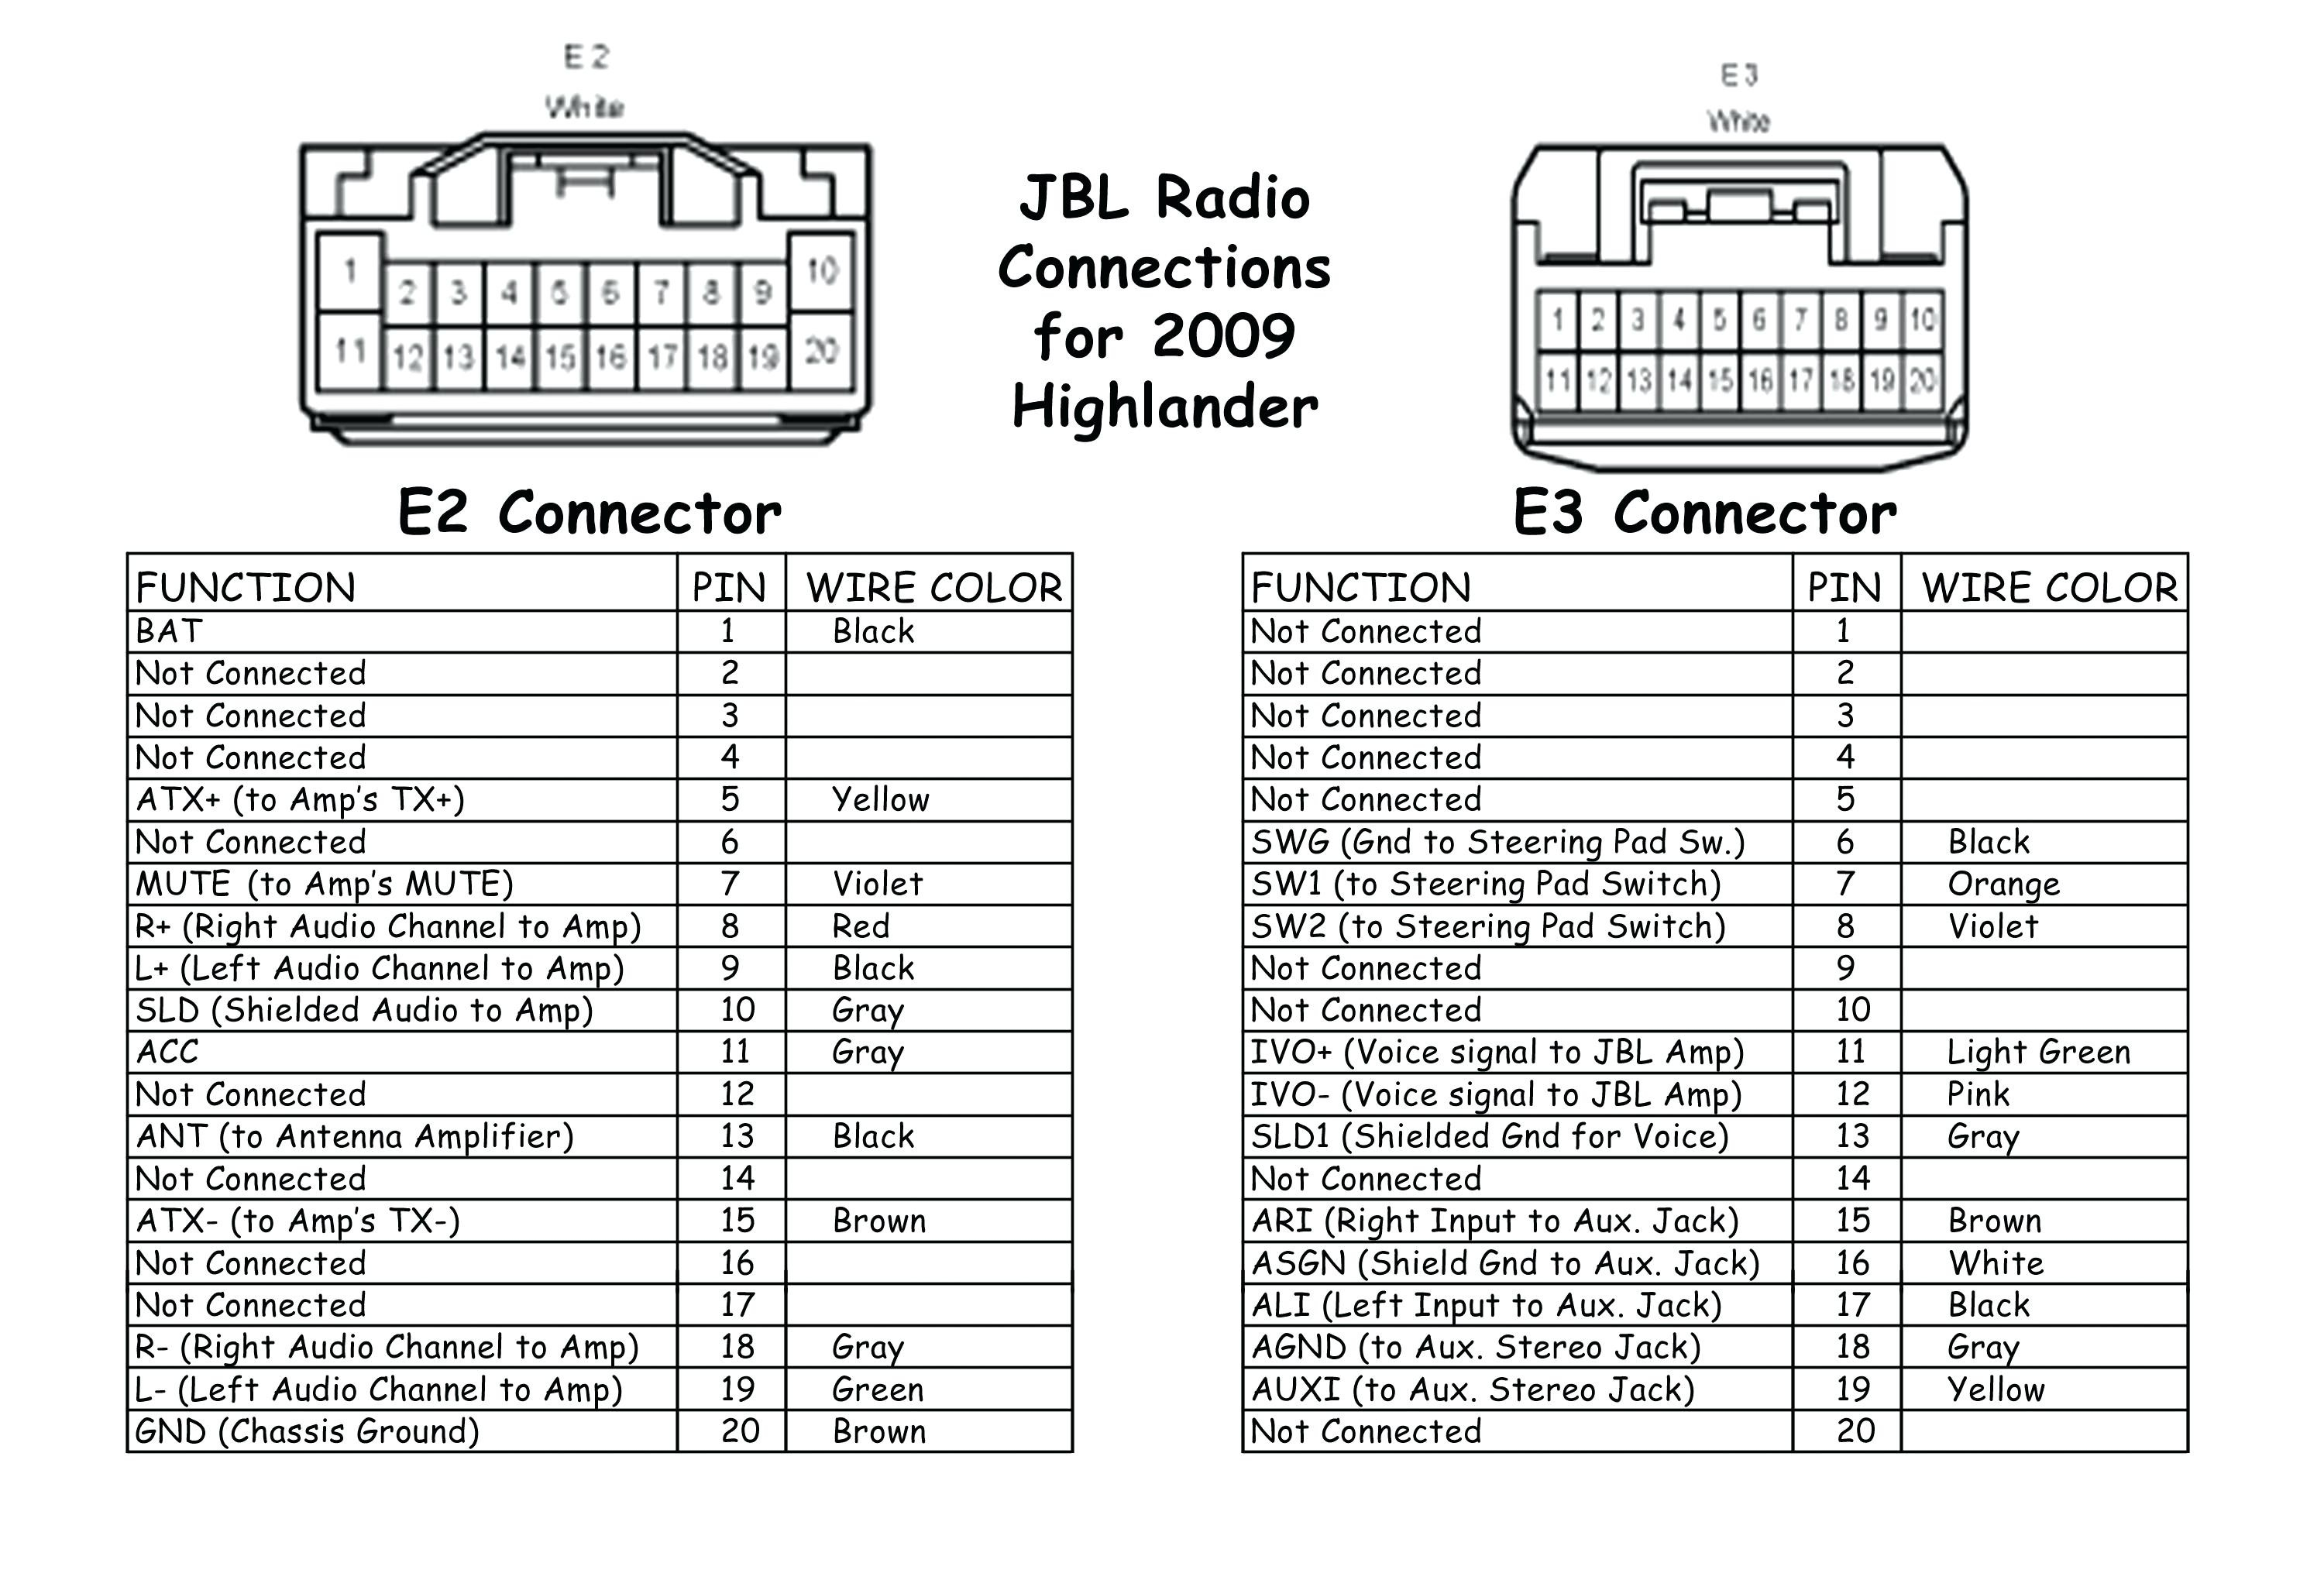 1996 ford explorer jbl radio wiring diagram Download-96 ford Ranger Wiring  Diagram Unique 1996